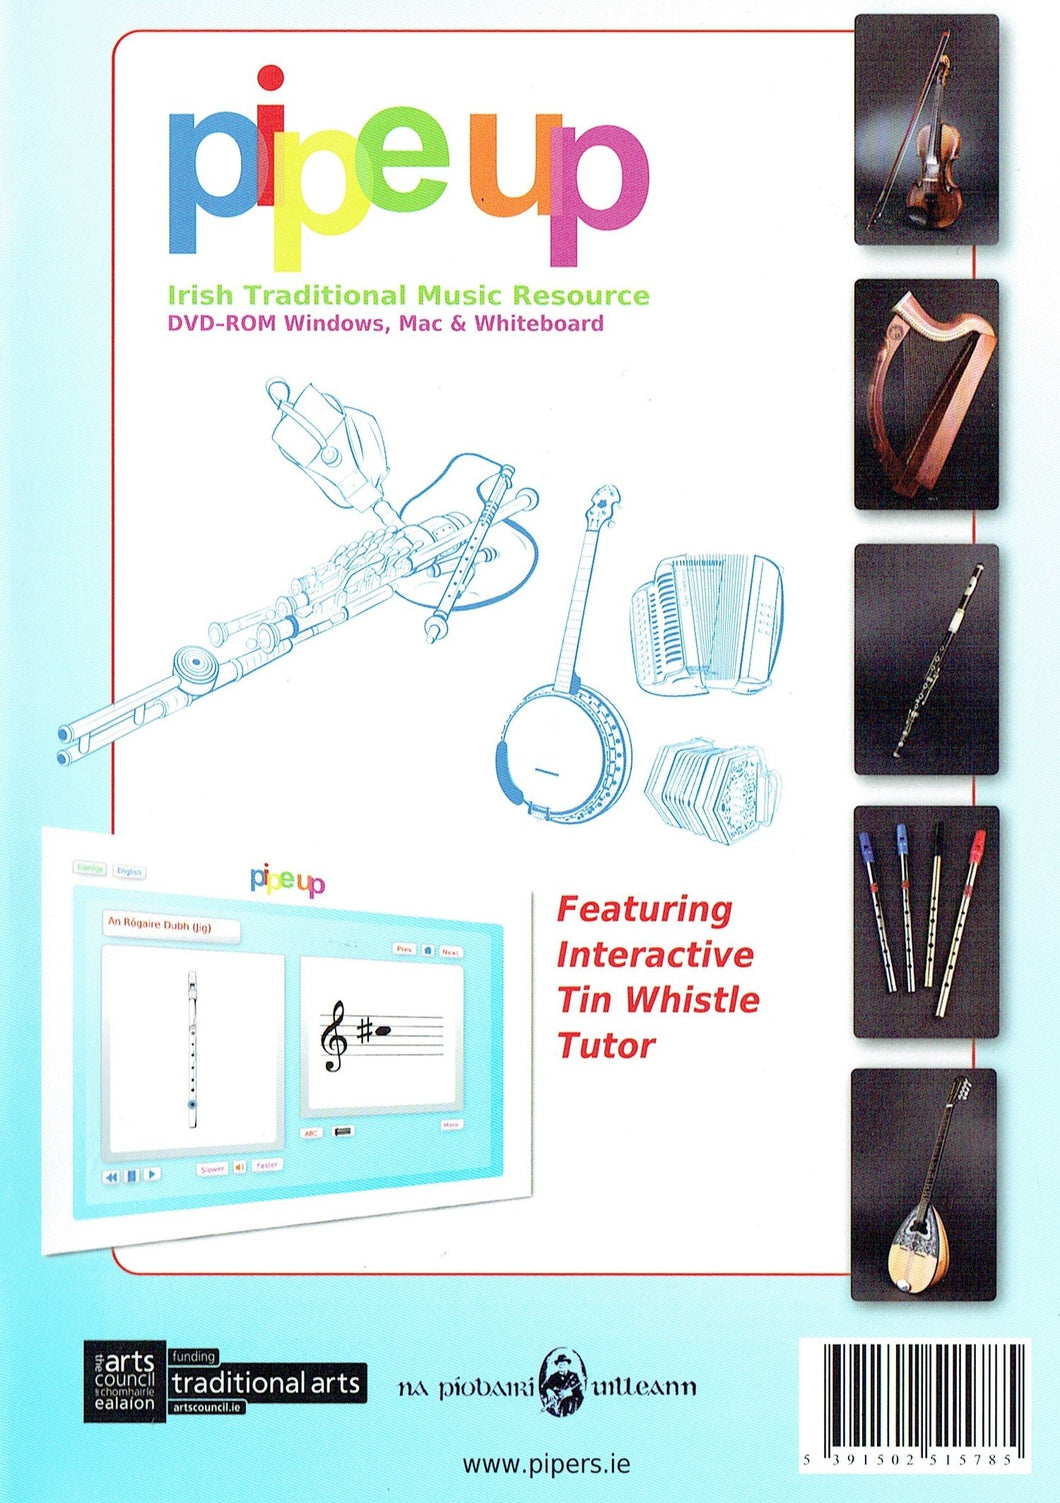 Pipe Up: Irish Traditional Music Resource/Acmhainn CHeol Dúchais Éireann - Featuring Interactive Tin Whistle Tutor - DVD-Rom Windows, Mac and Whiteboard